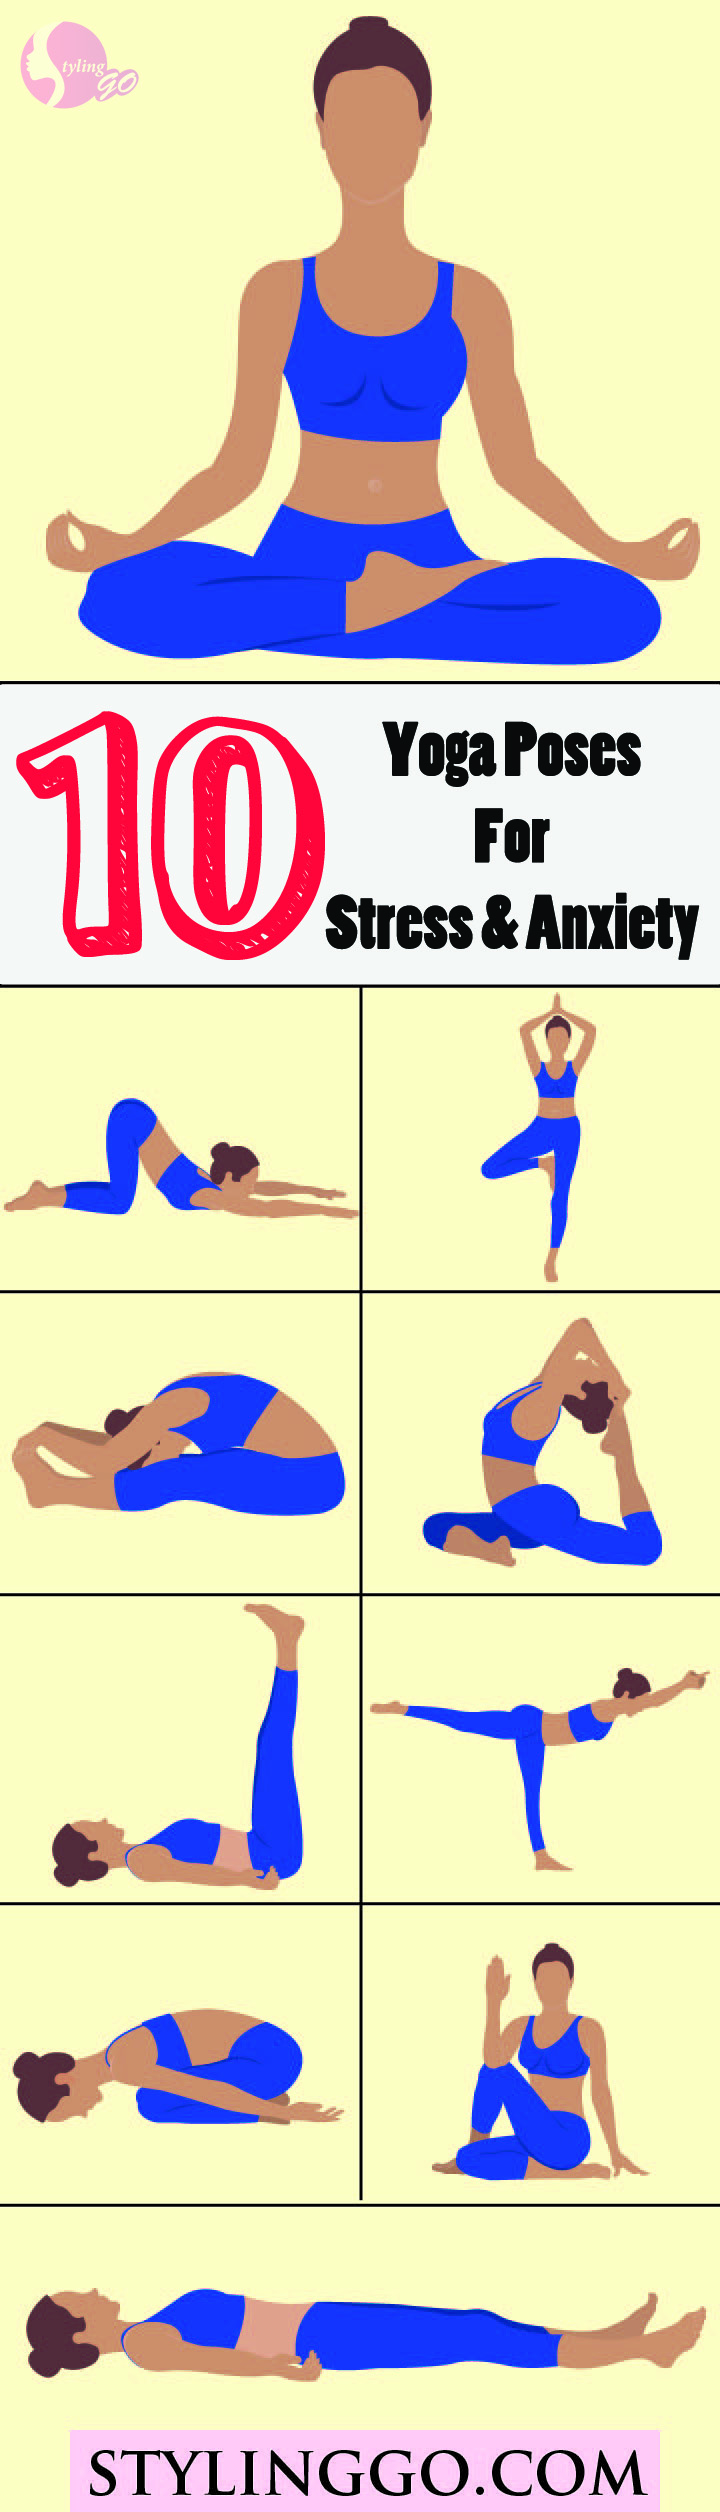 top 10 yoga poses for stress and anxiety